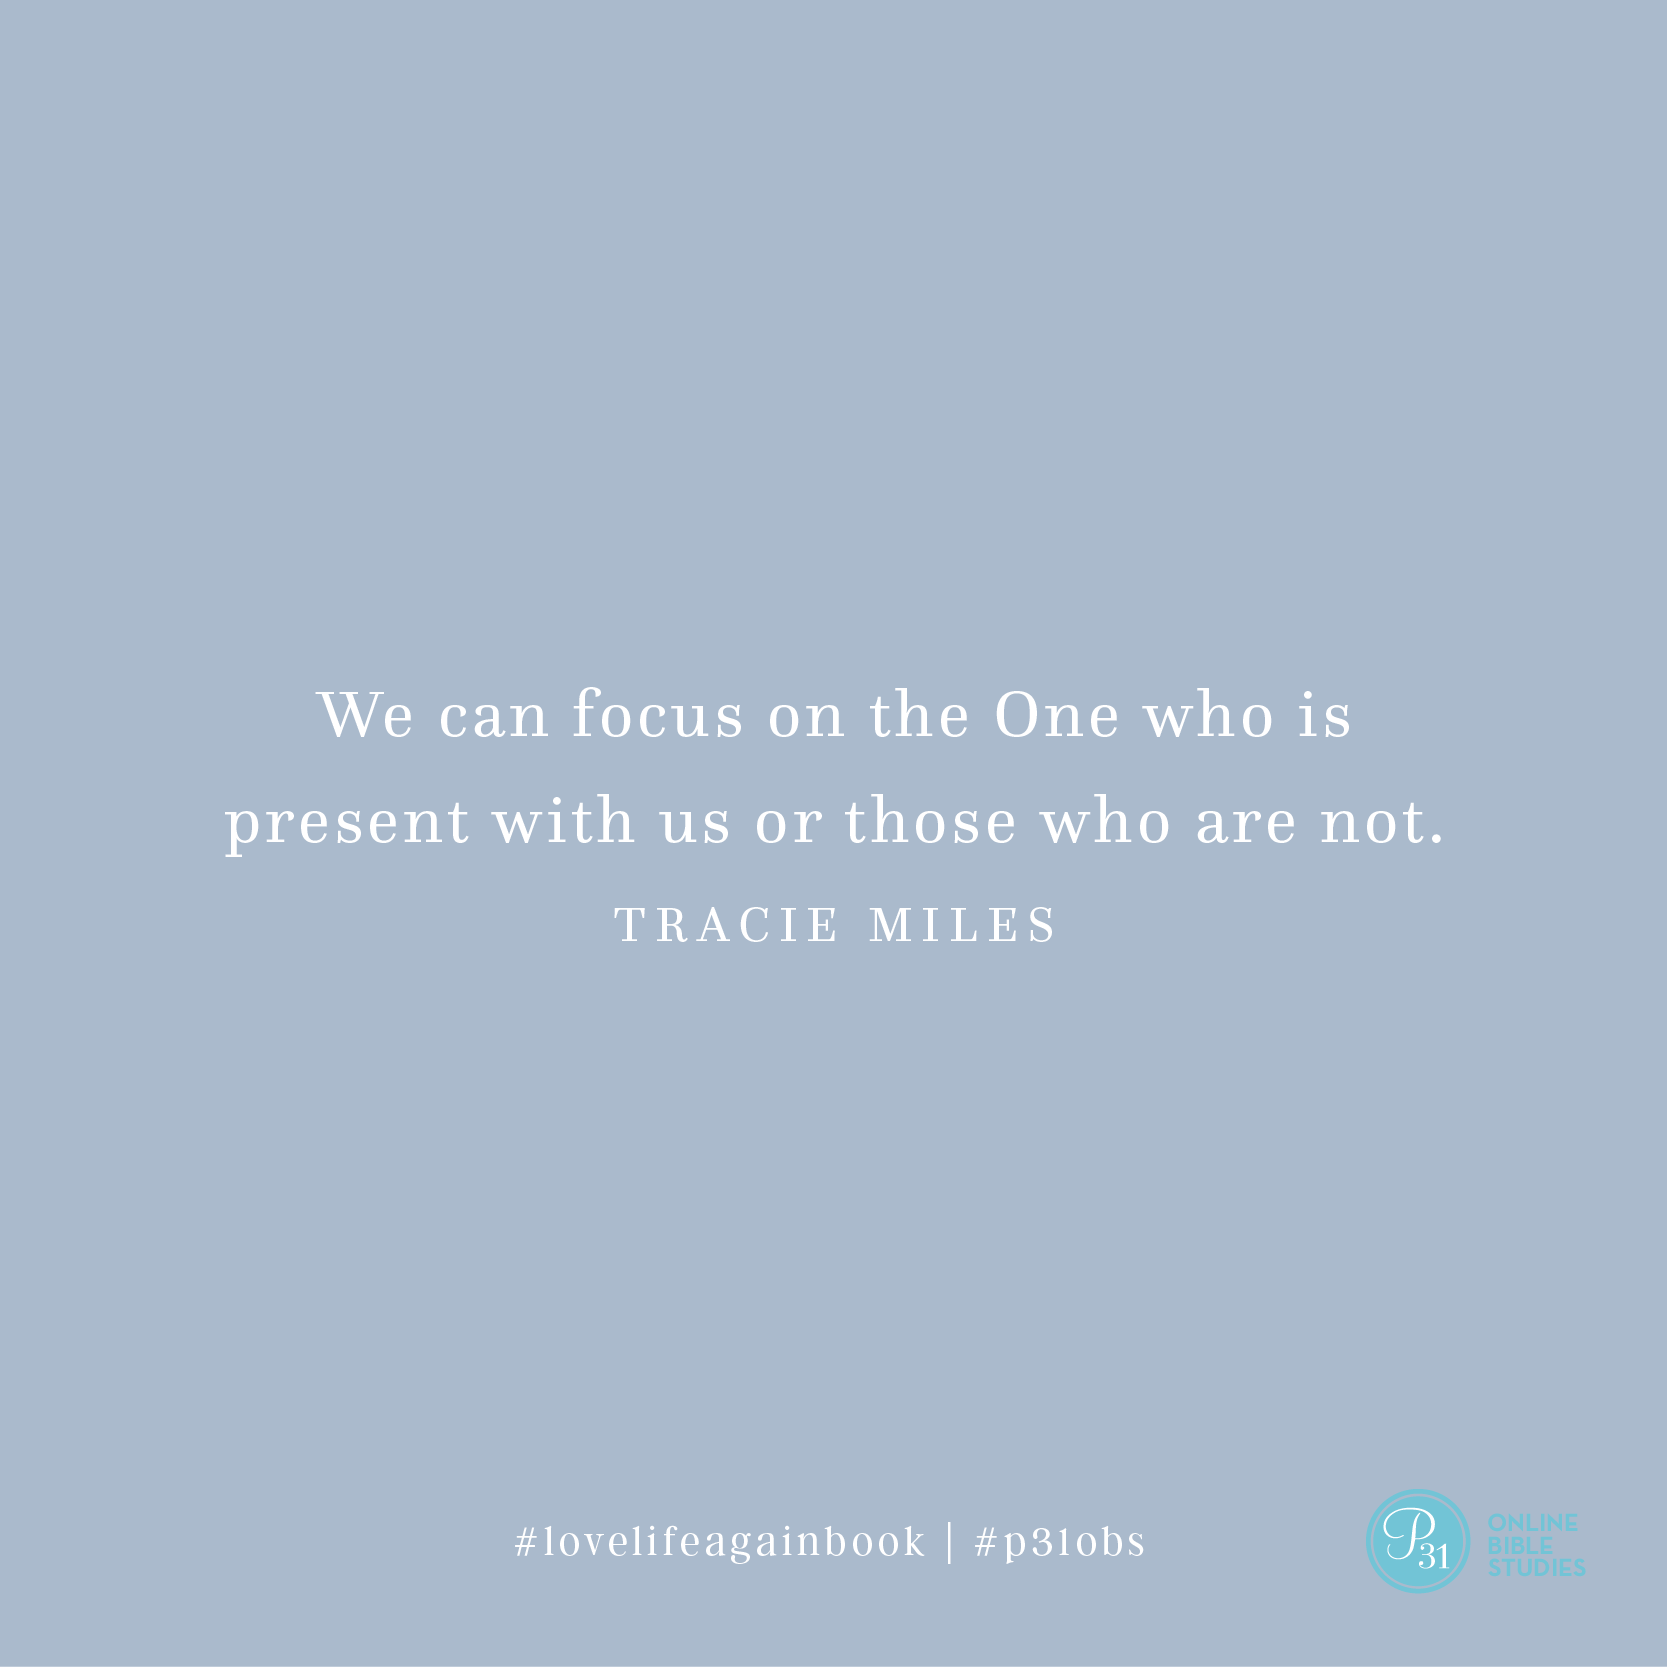 """""""We can focus on the One who is present with us or those who are not."""" - Tracie Miles #LoveLifeAgain 